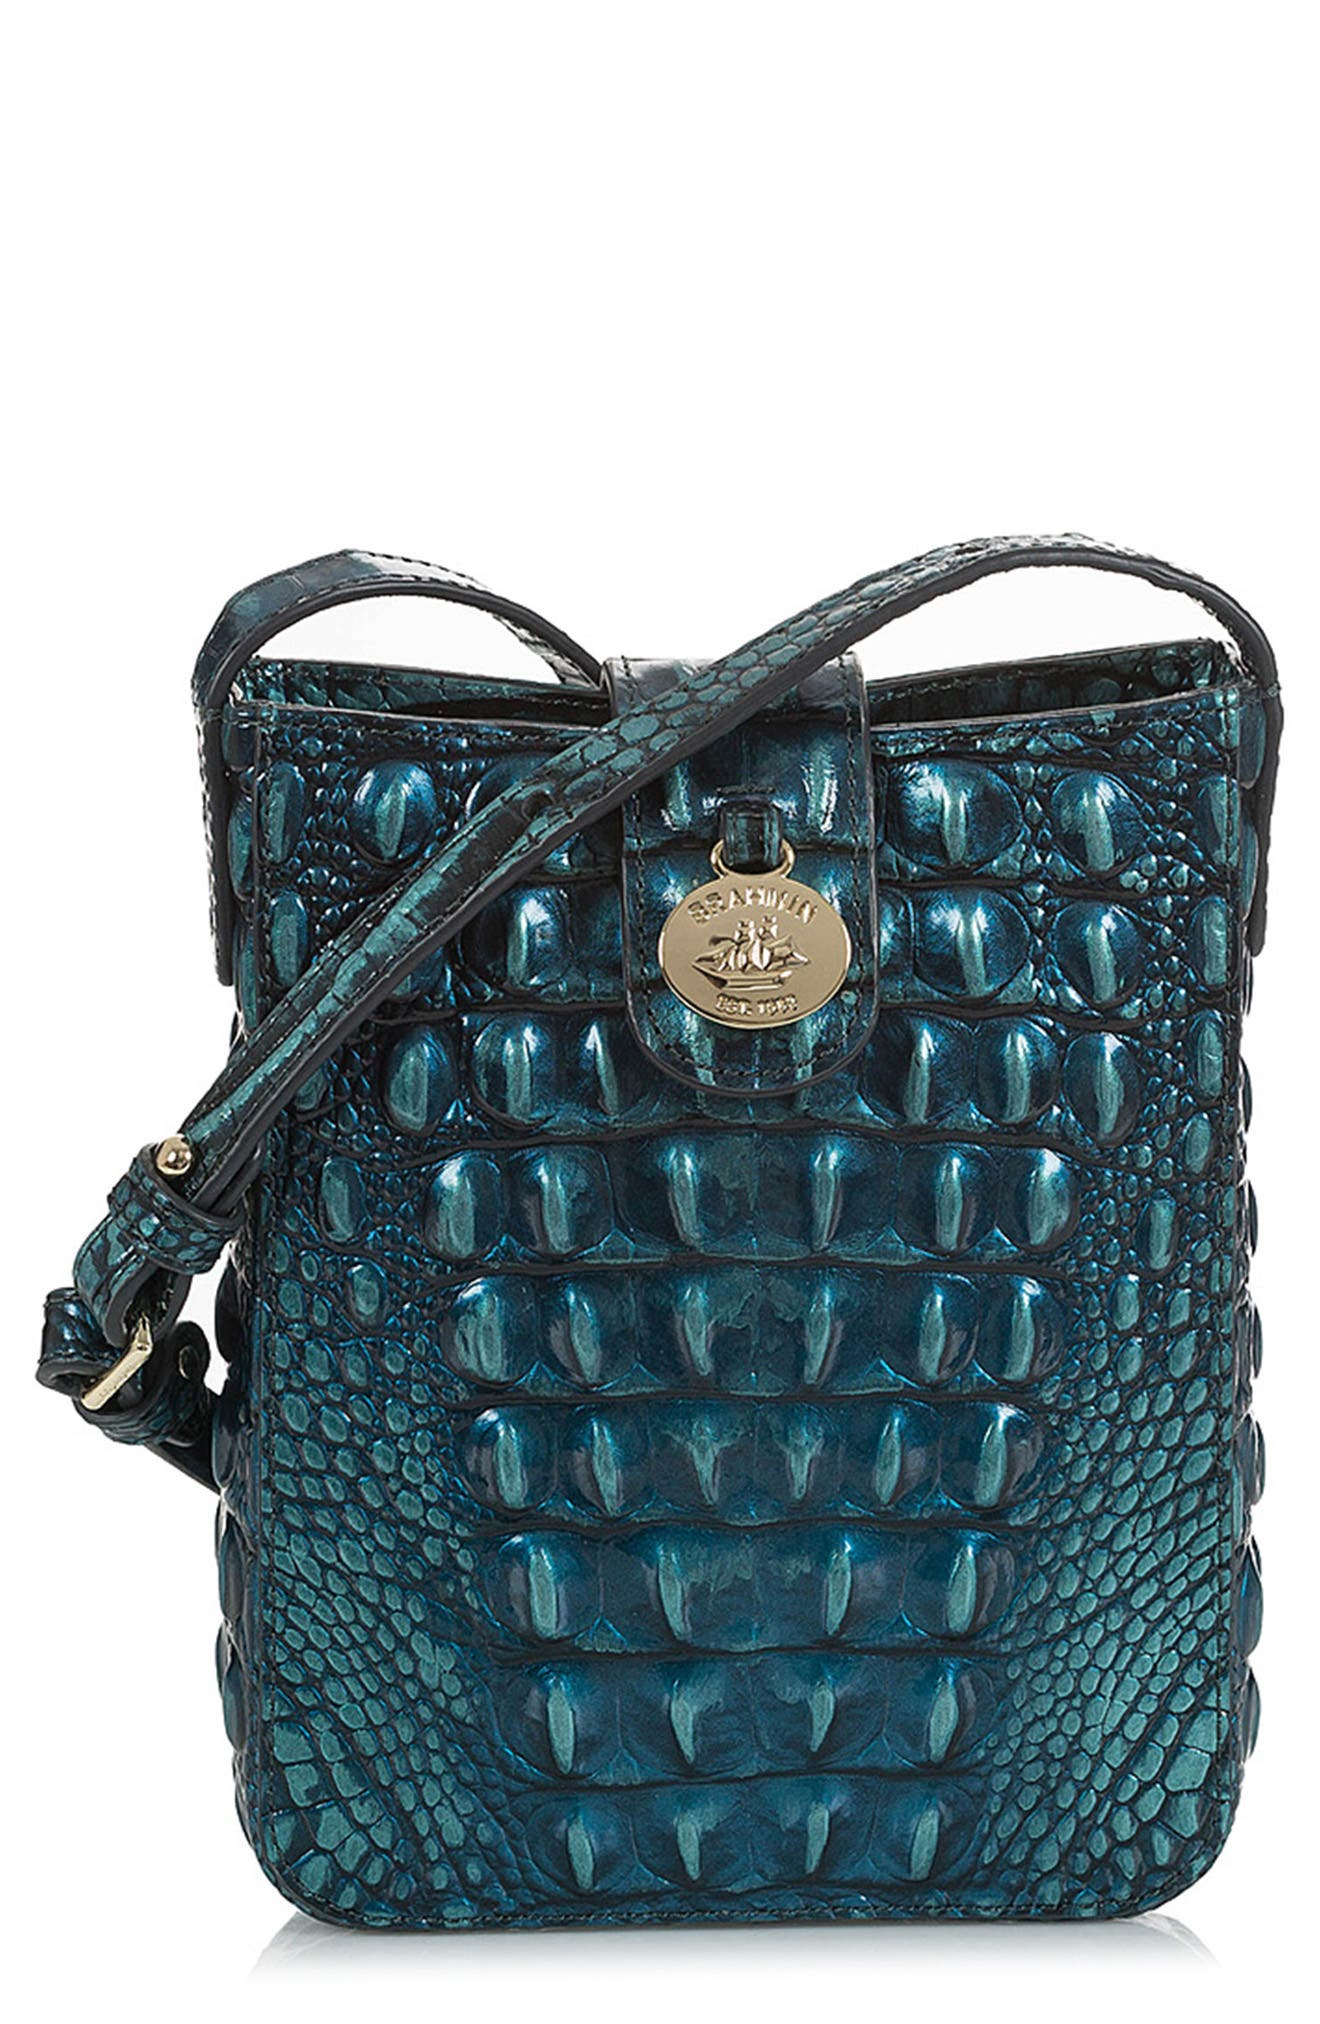 Marley Croc Embossed Leather Crossbody Bag,                         Main,                         color, VERDIGRIS